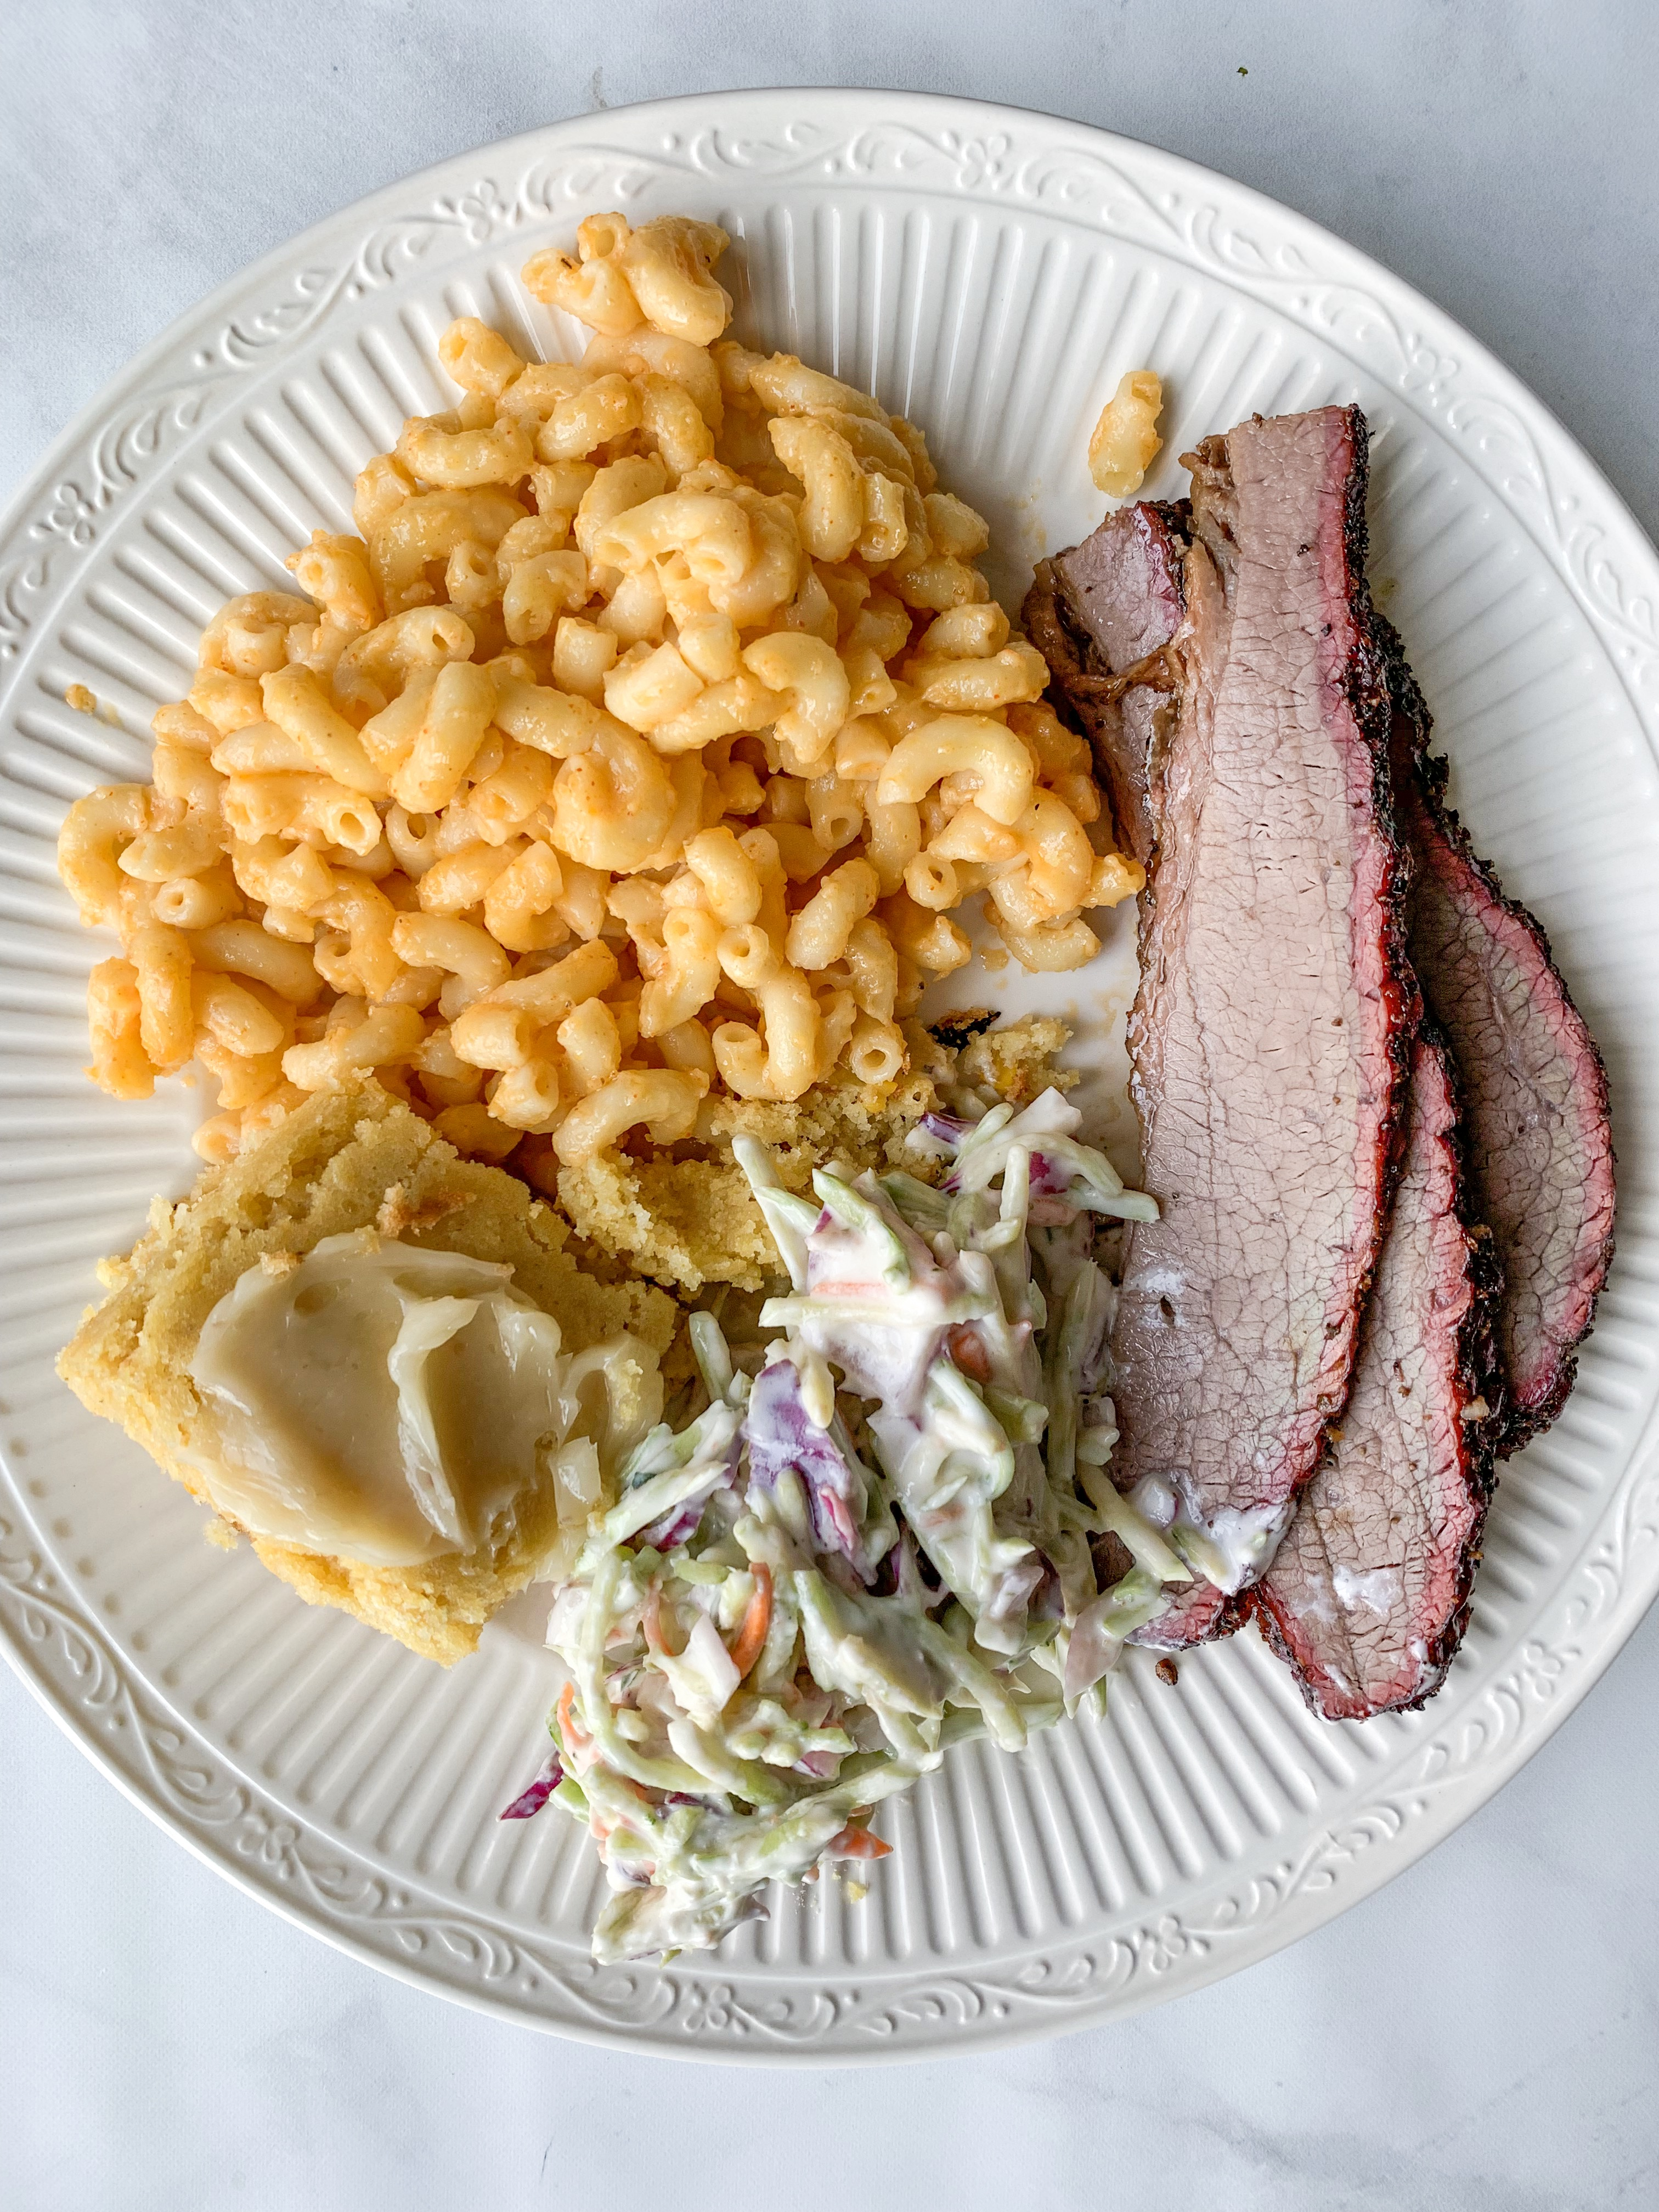 Fathers Day Menu, Brisket, mac and cheese, cornbread, and slaw